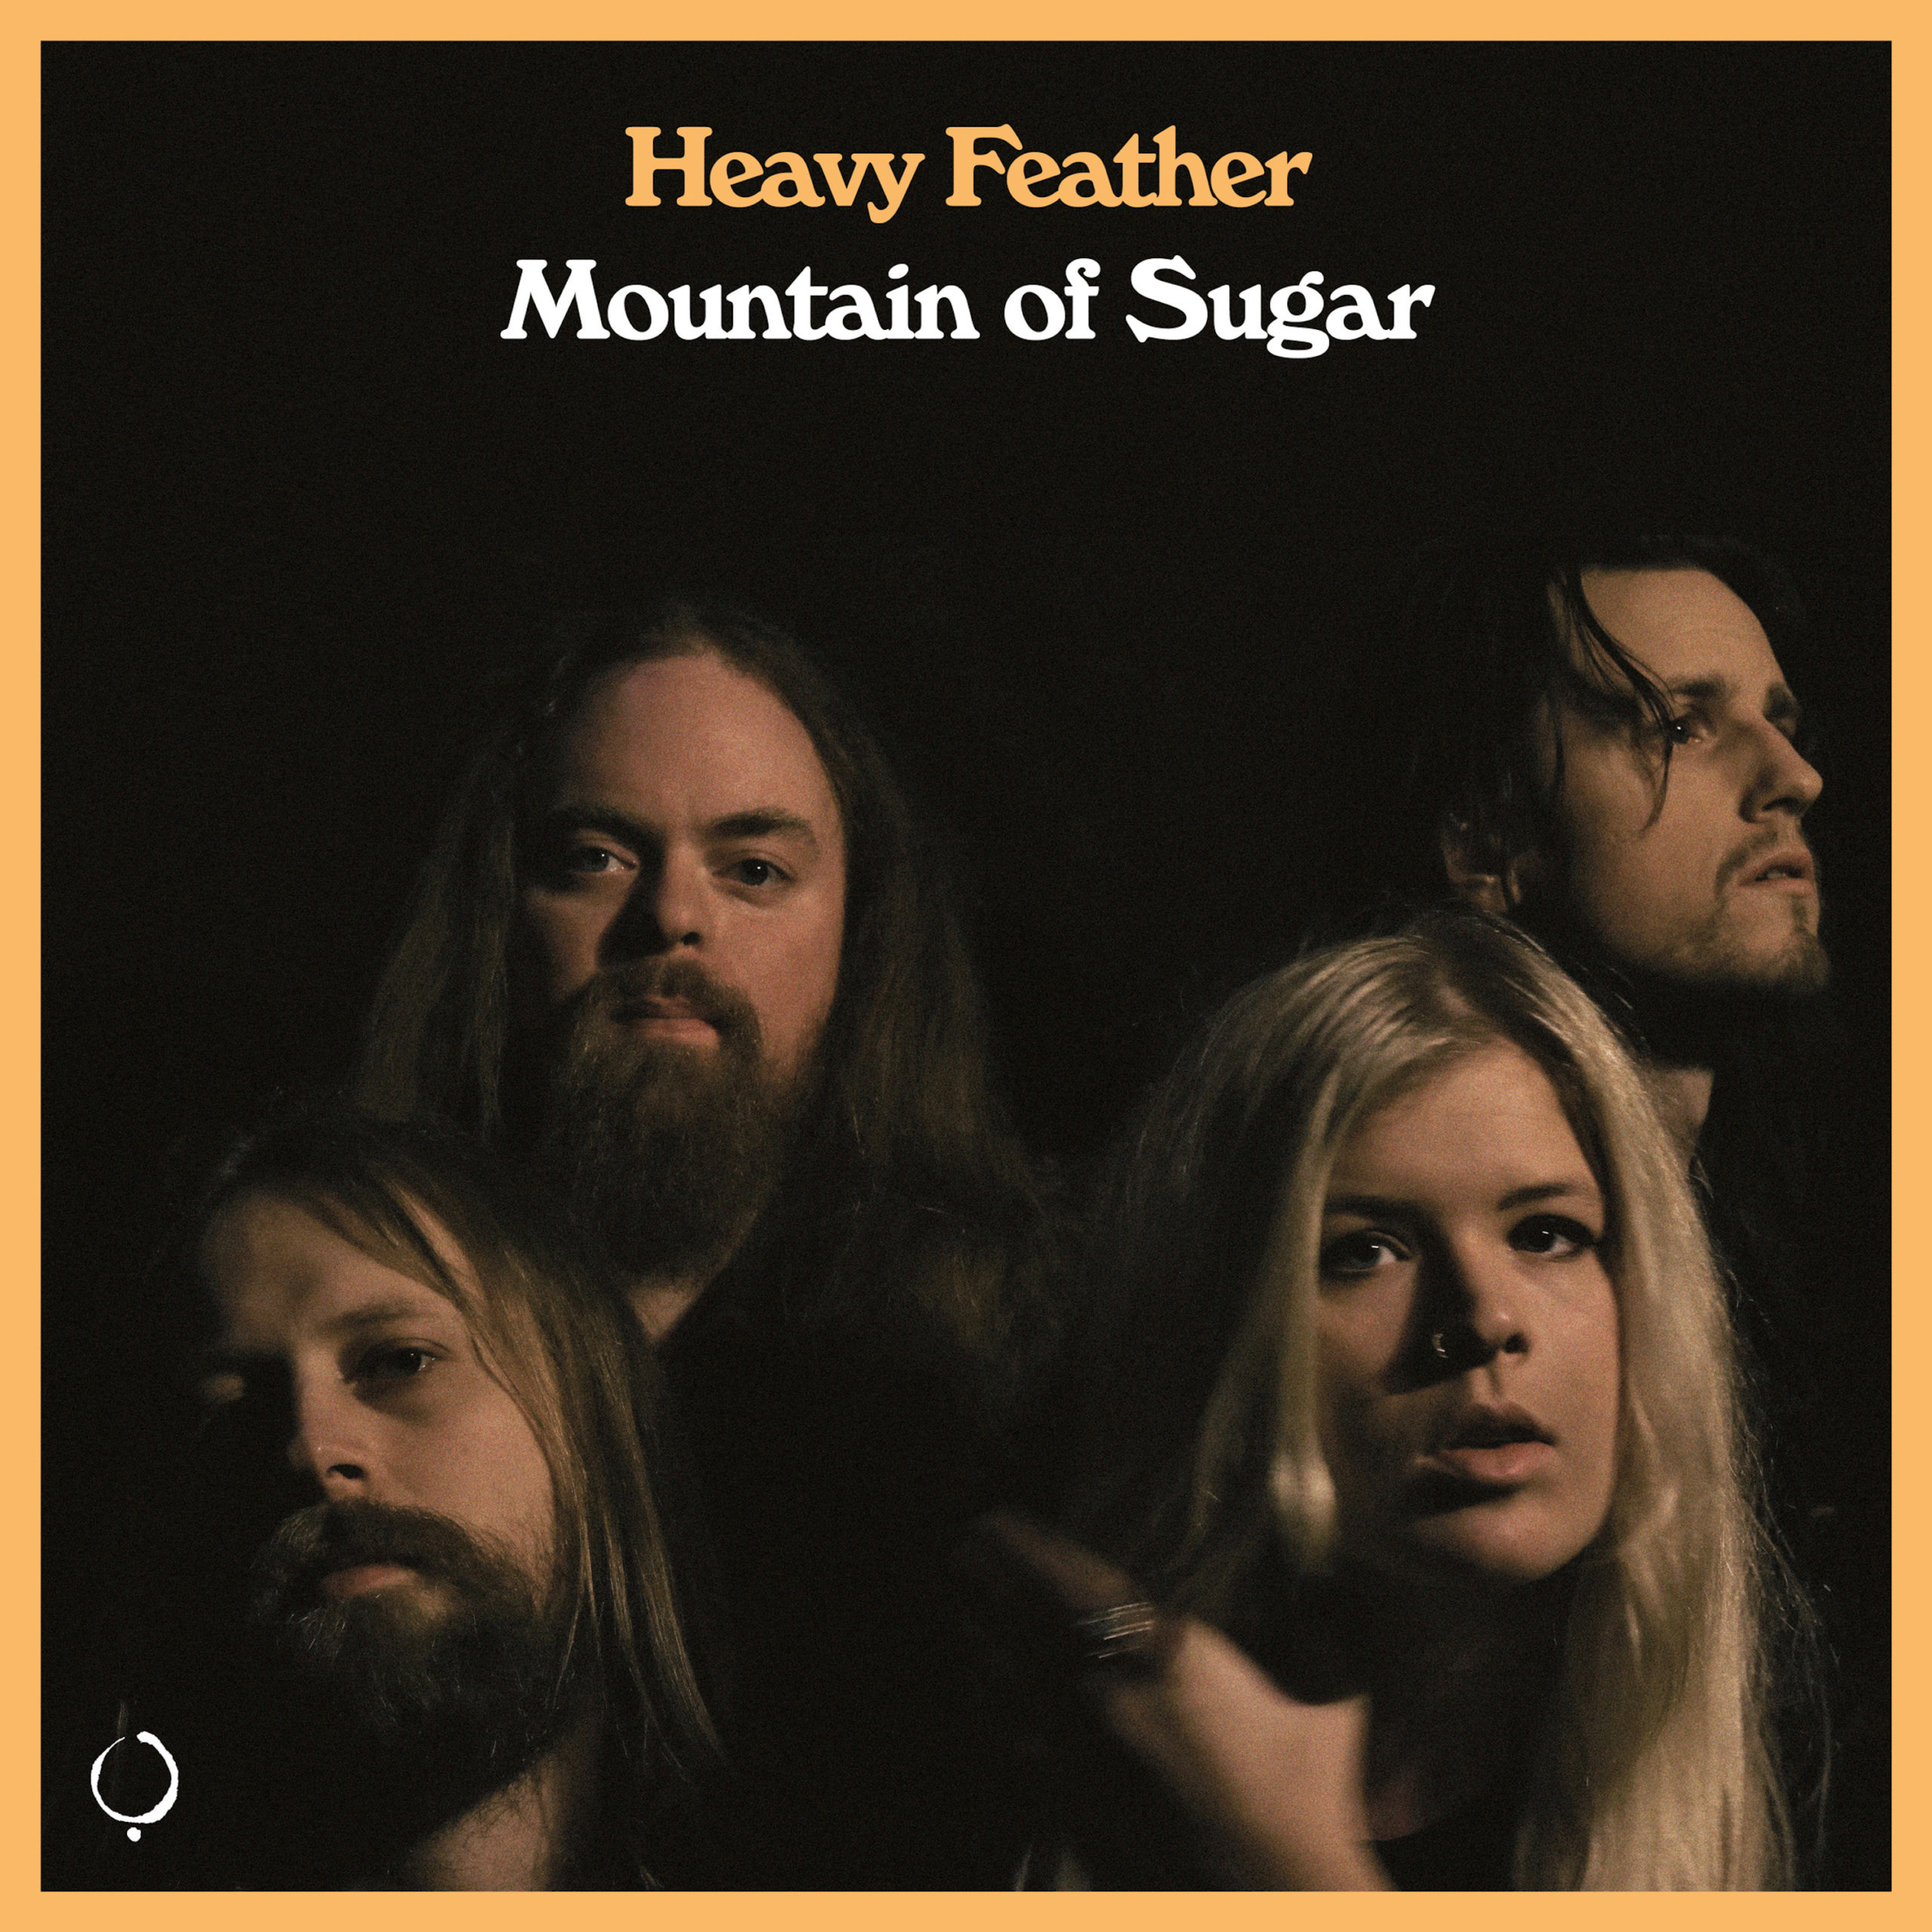 heavy feather mountain of sugar